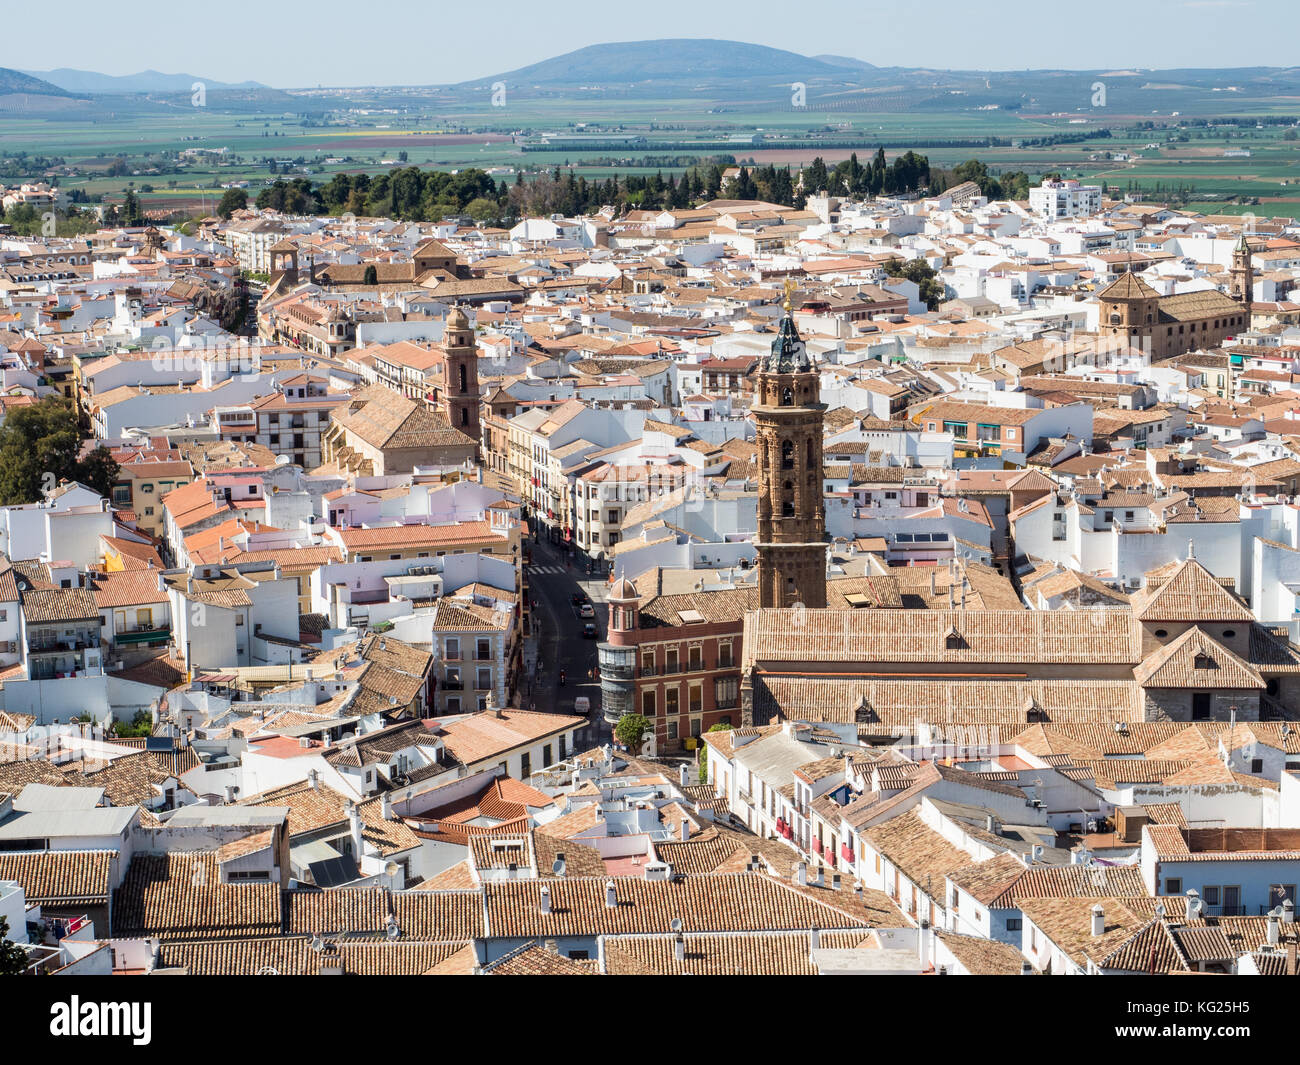 View from the hilltop fortress, Antequera, Andalucia, Spain, Europe Stock Photo